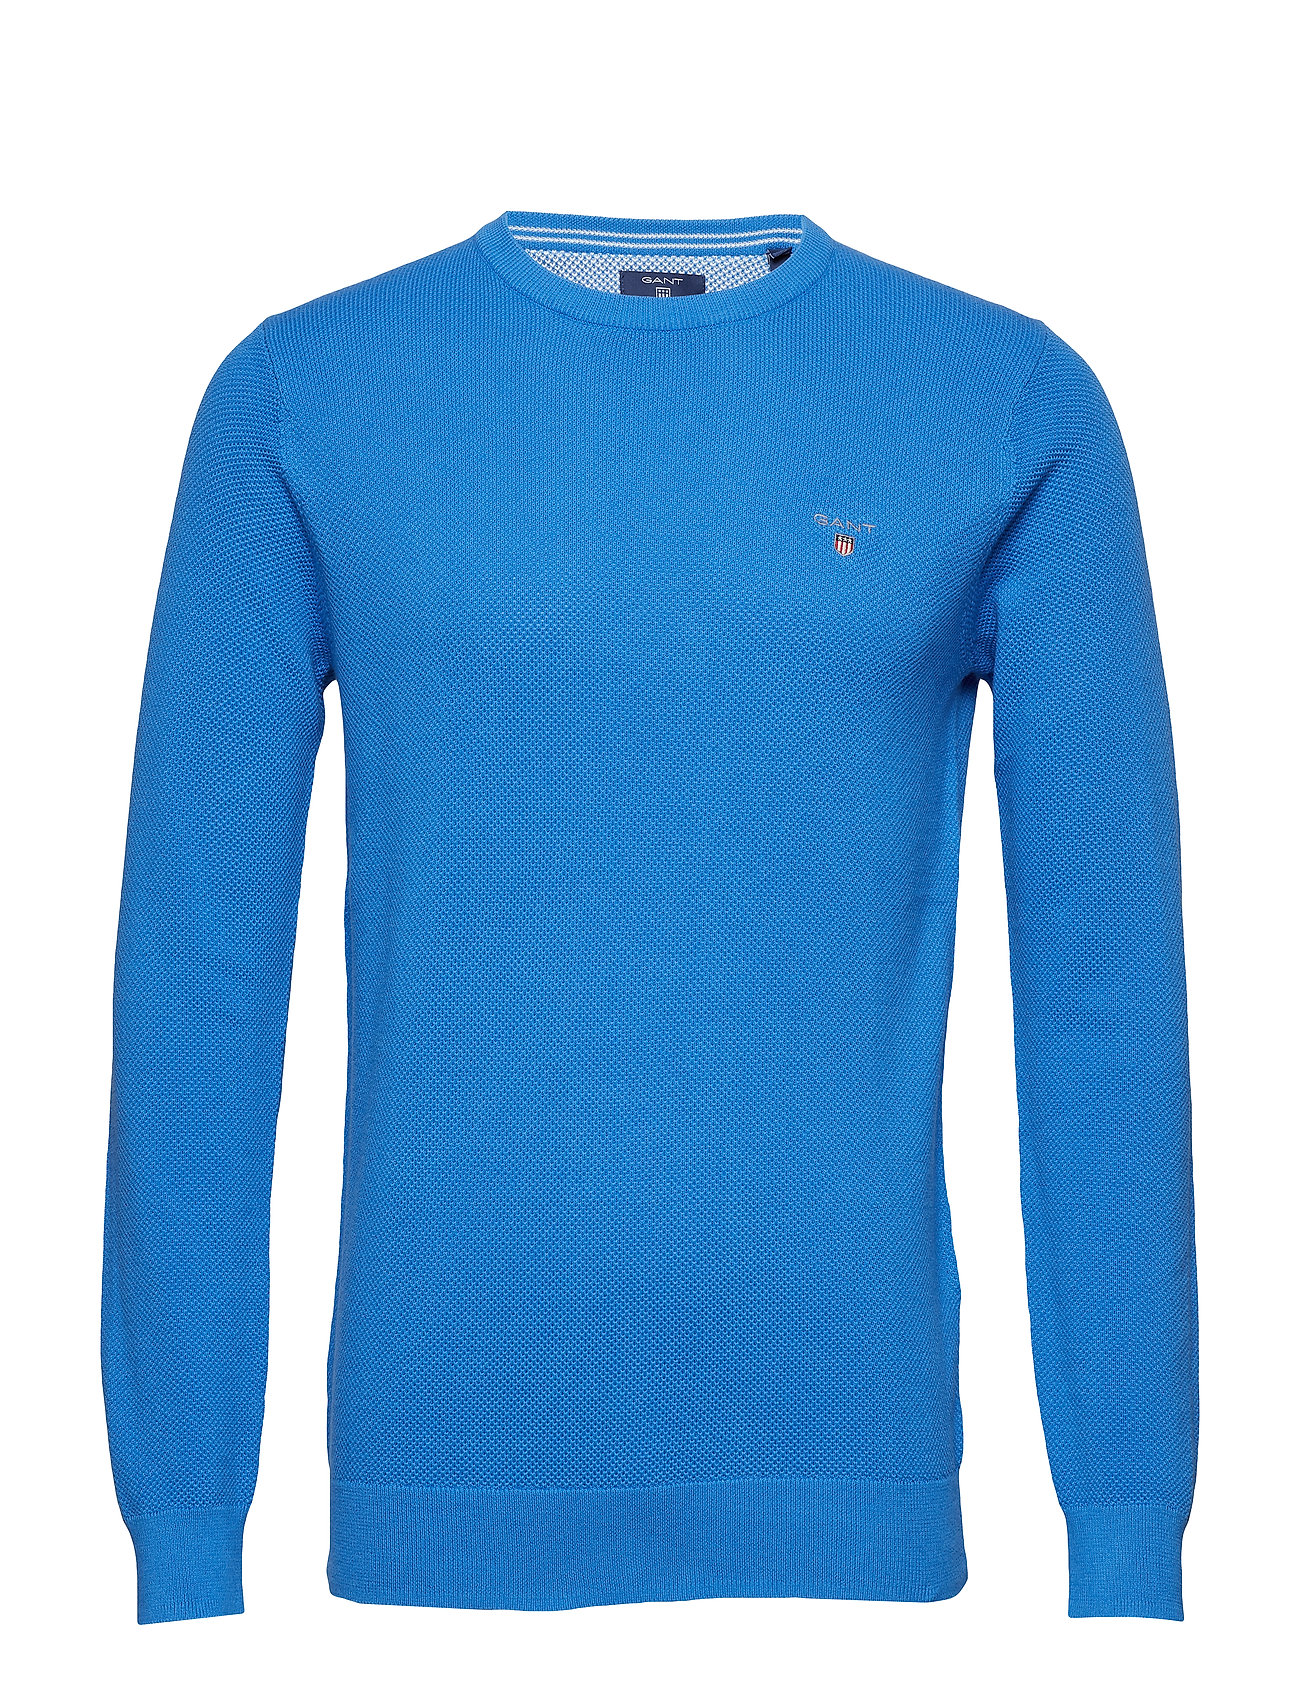 GANT COTTON PIQUE CREW - PALACE BLUE